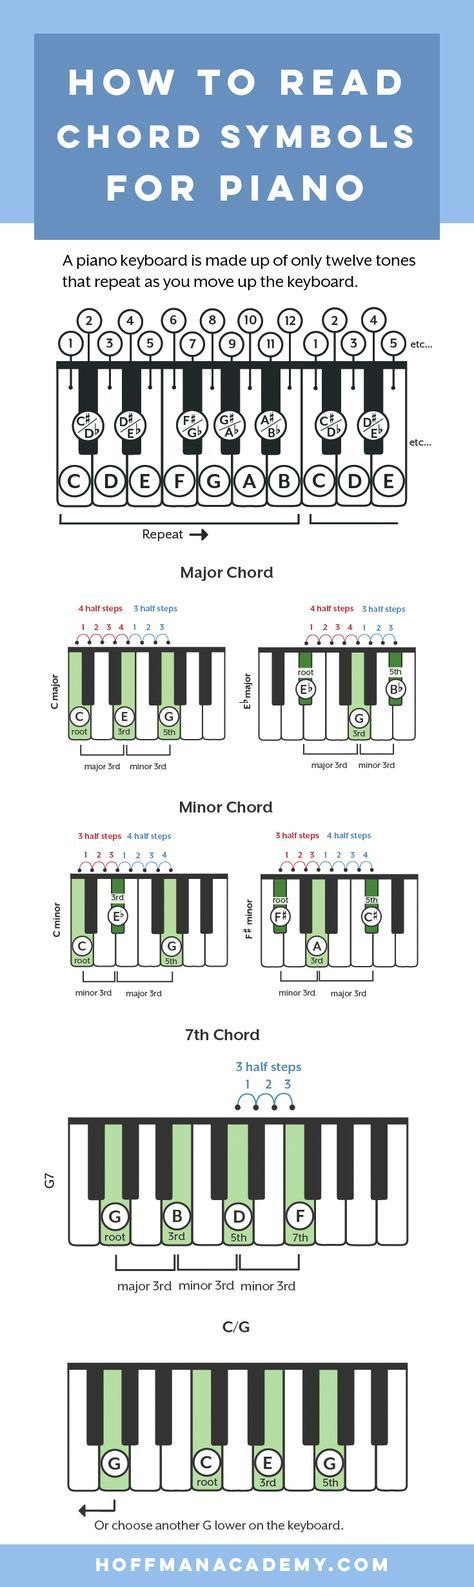 How To Read And Play Piano Chords Pianio Pinterest Pianos